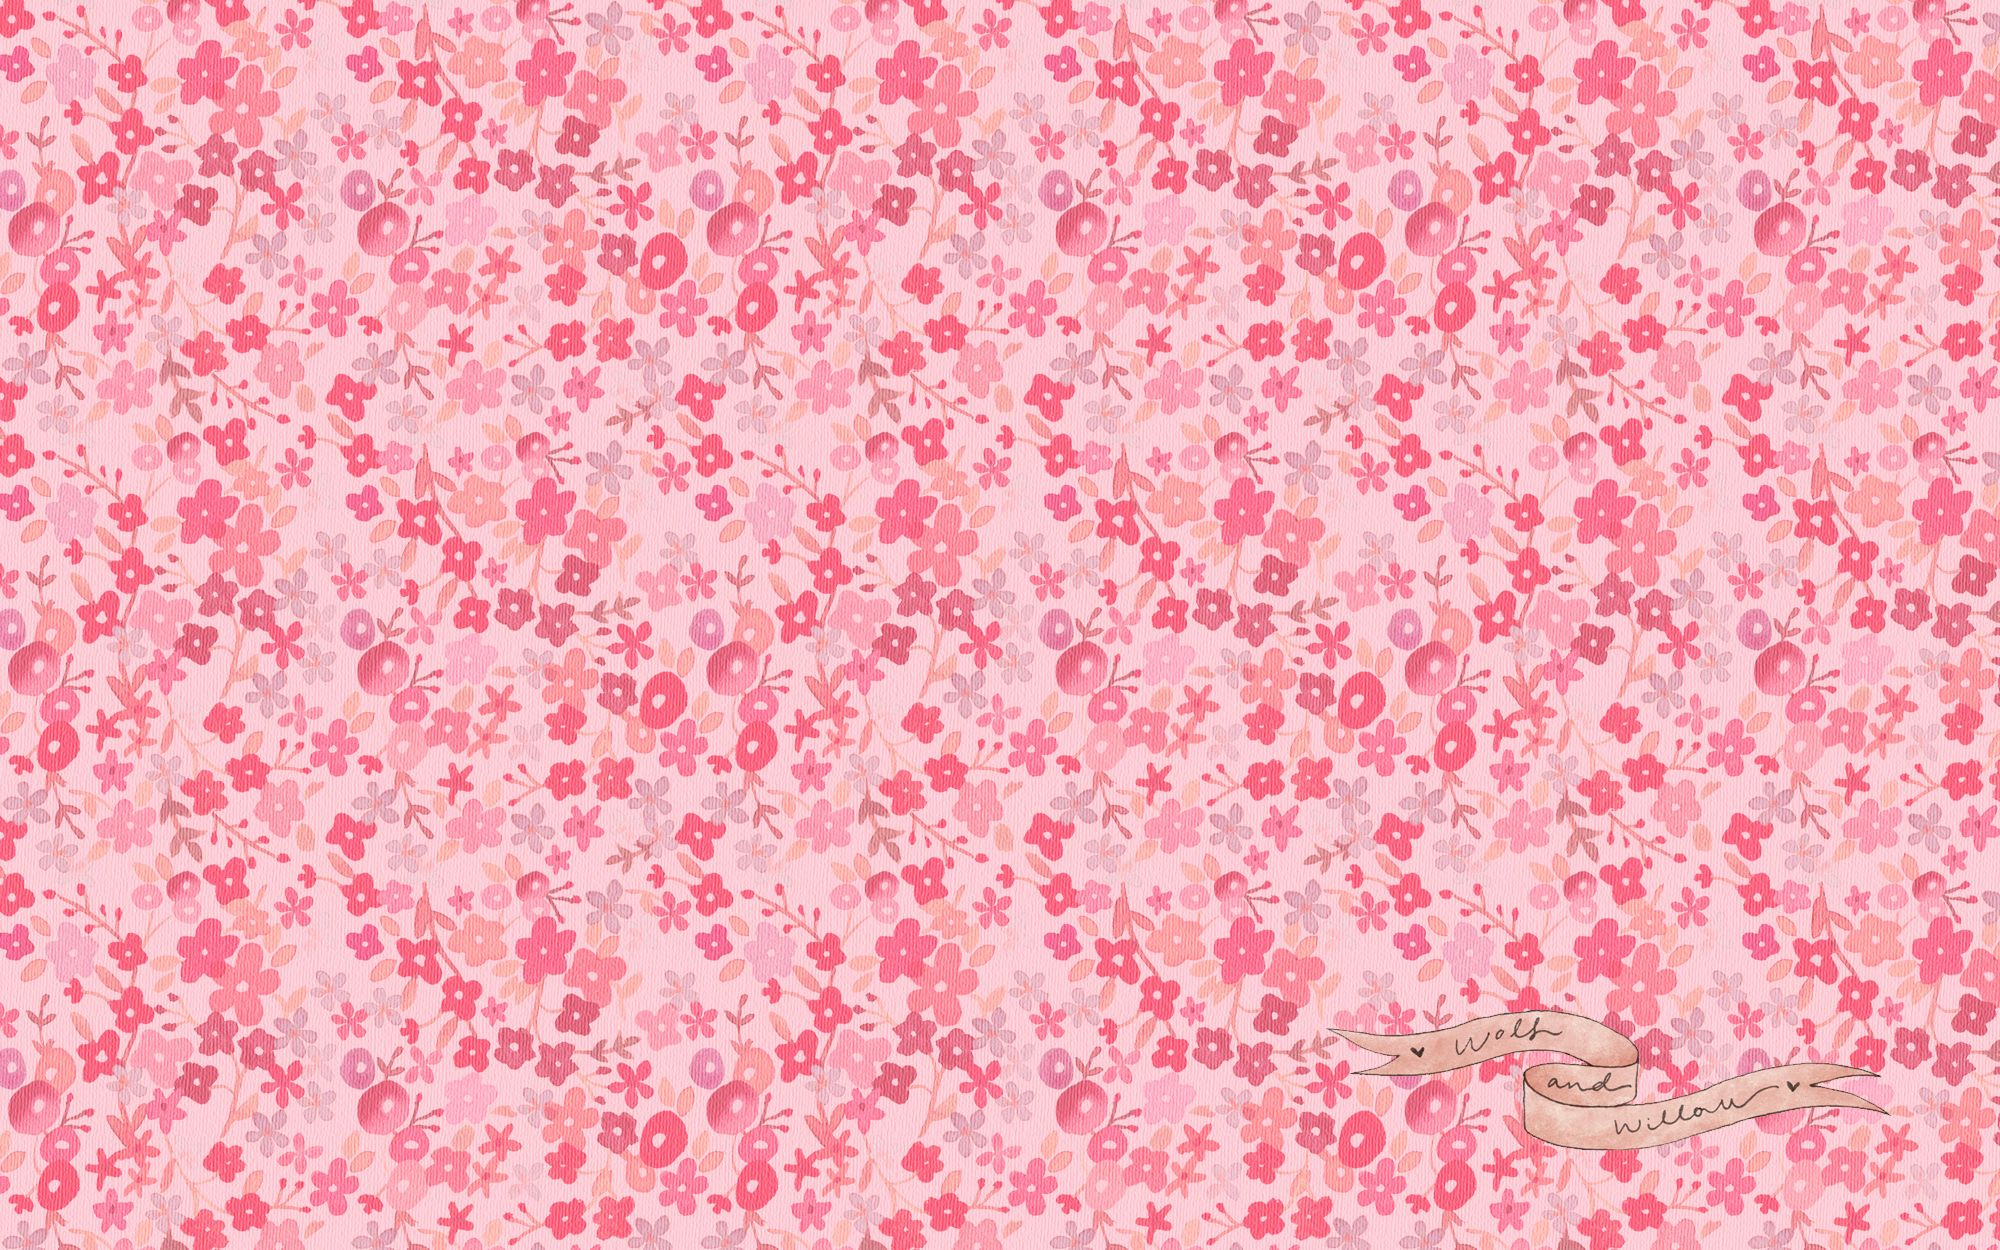 Tumblr Wallpapers Vintage Background. - Media file | PixelsTalk.Net